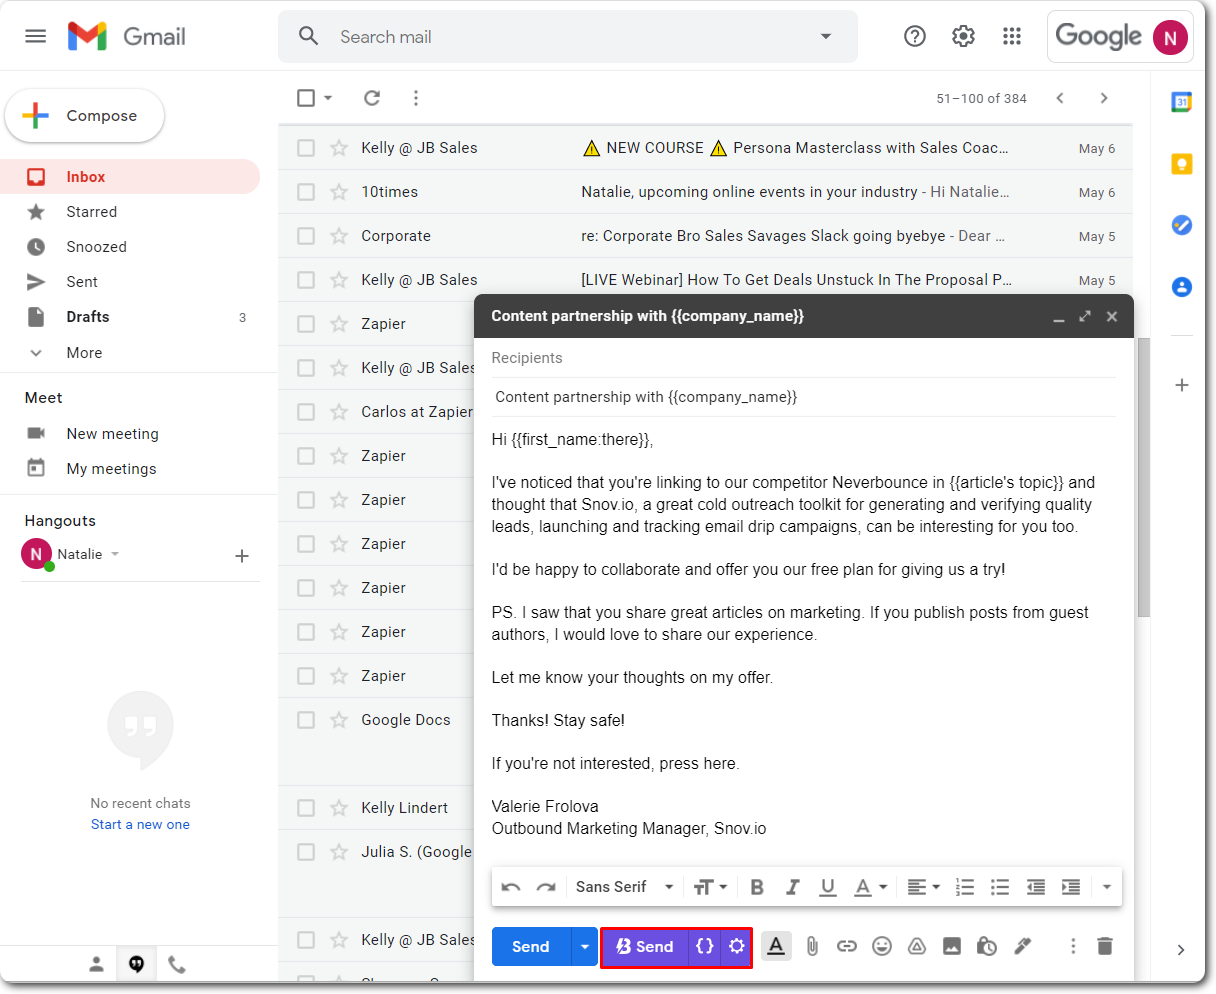 Sending emails with GBlast